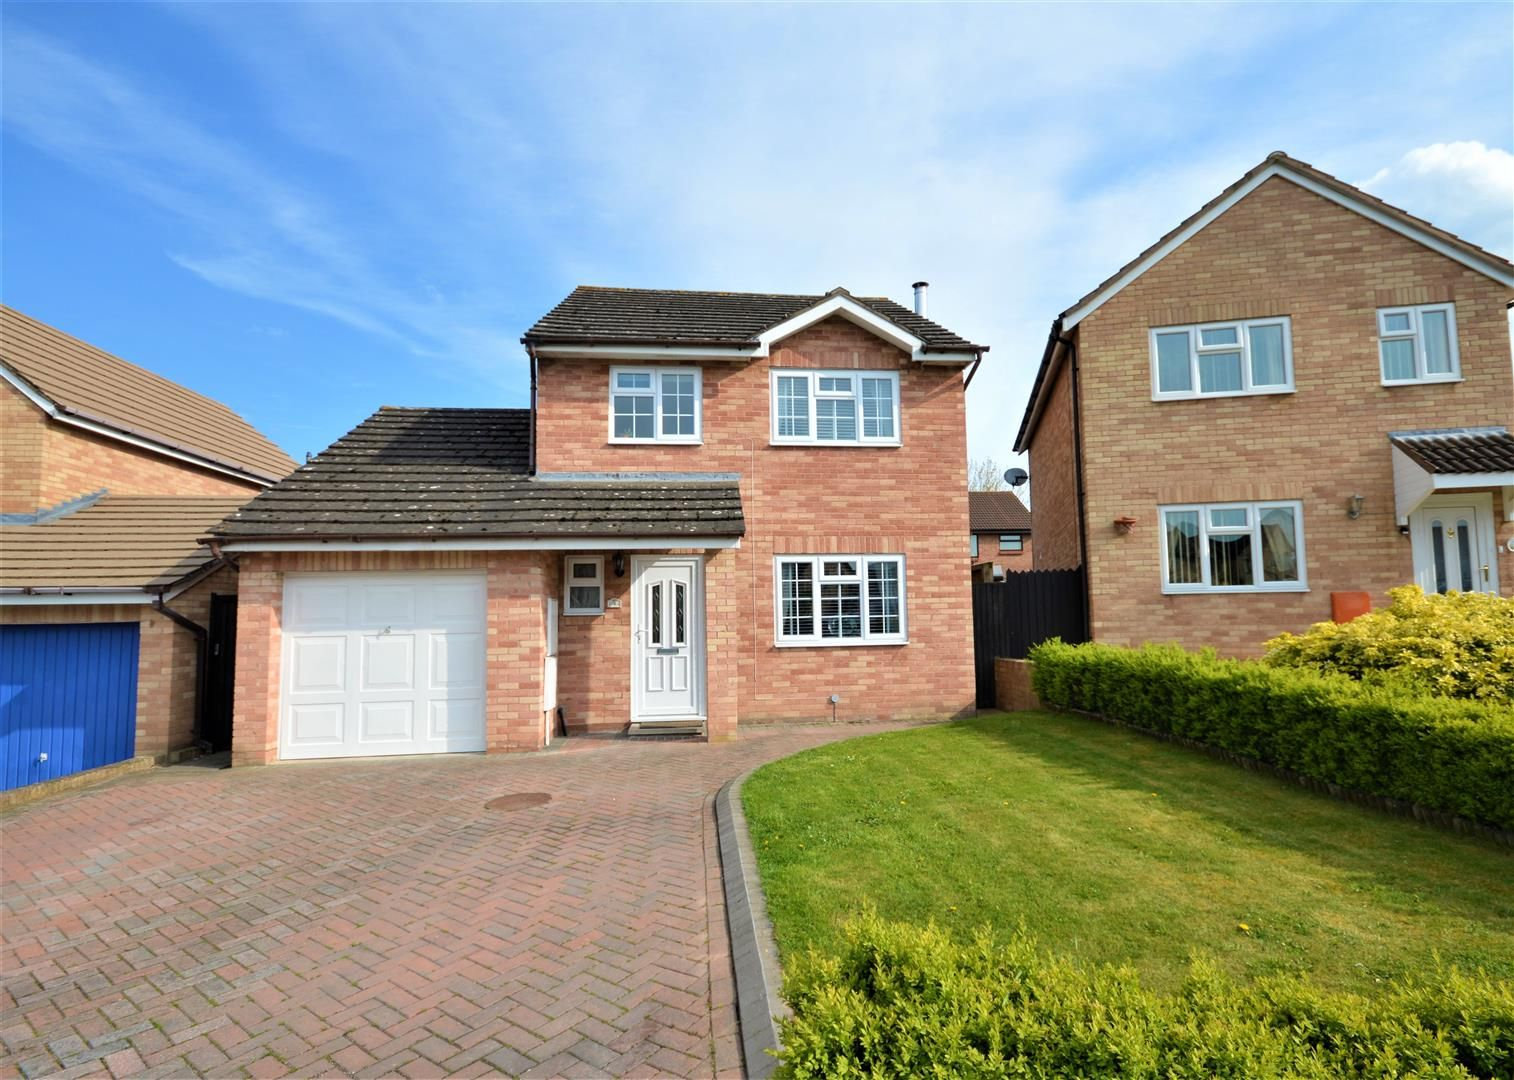 3 bed detached for sale in Belmont - Property Image 1